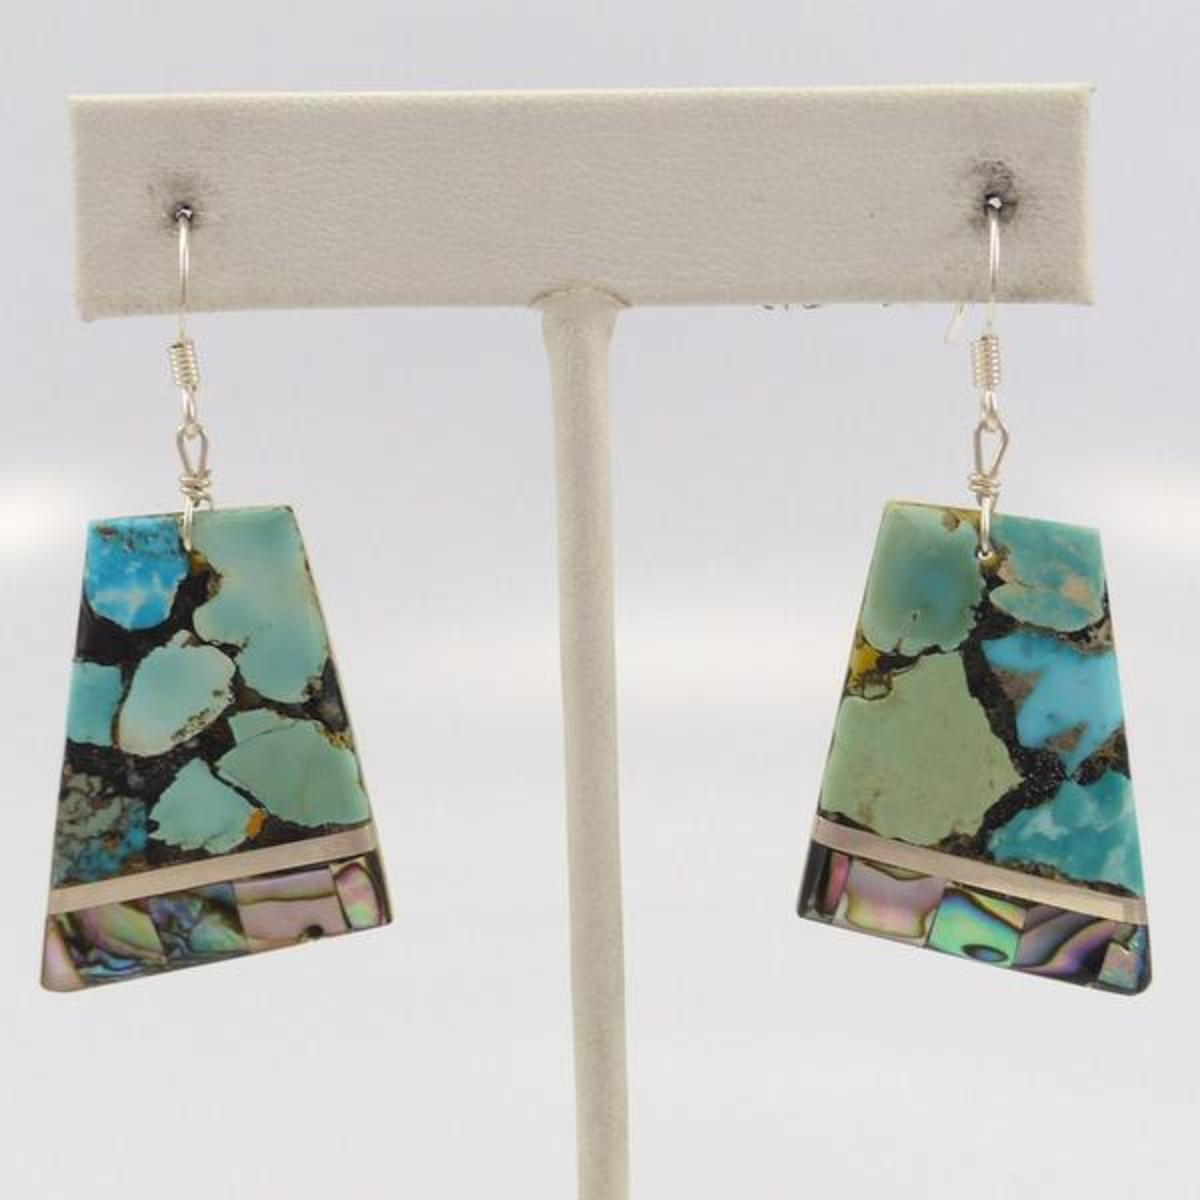 Turquoise and shell earrings